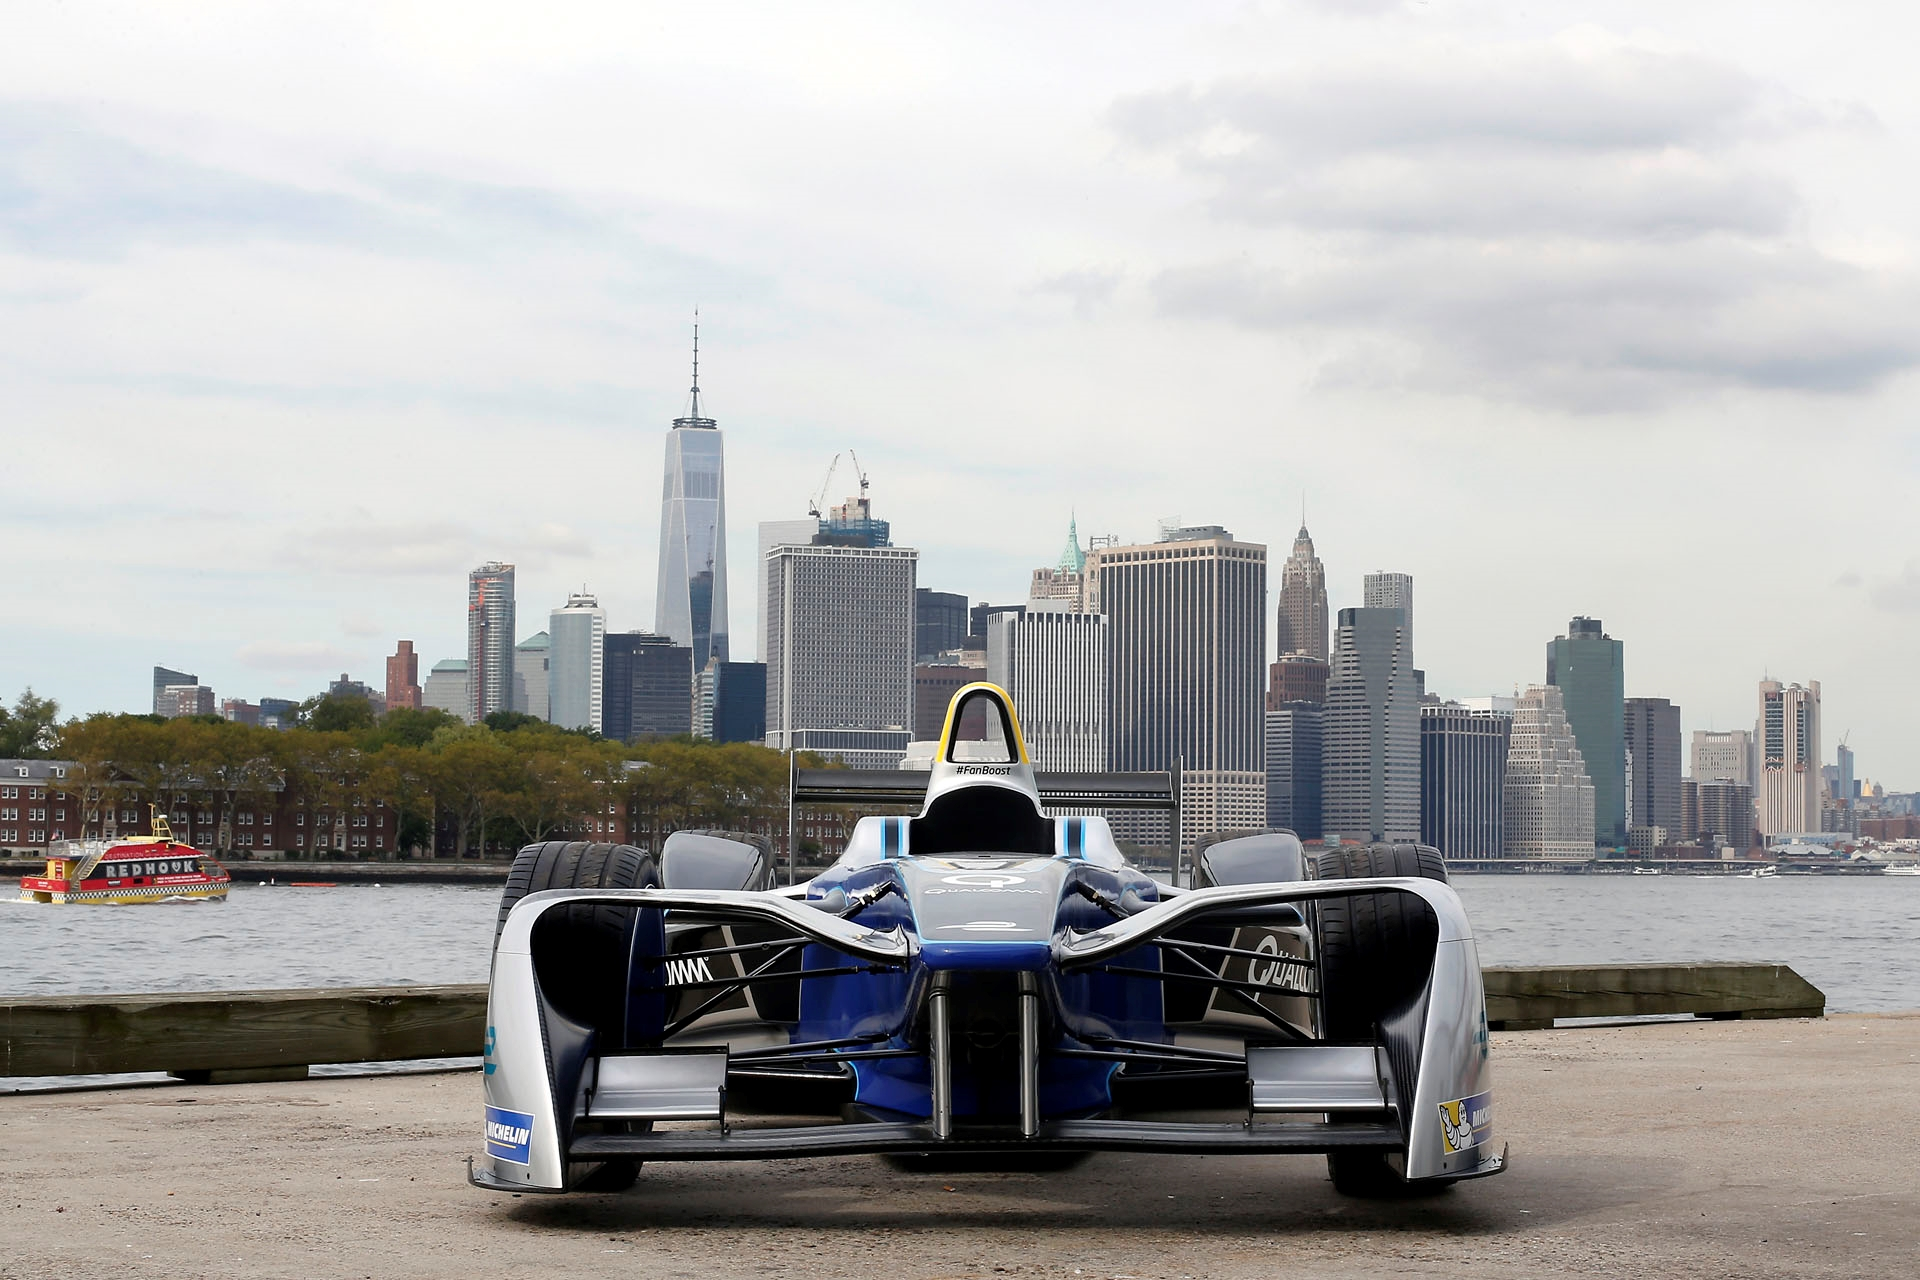 Formula E auto racing series will hold an event in Brooklyn in July 2017.